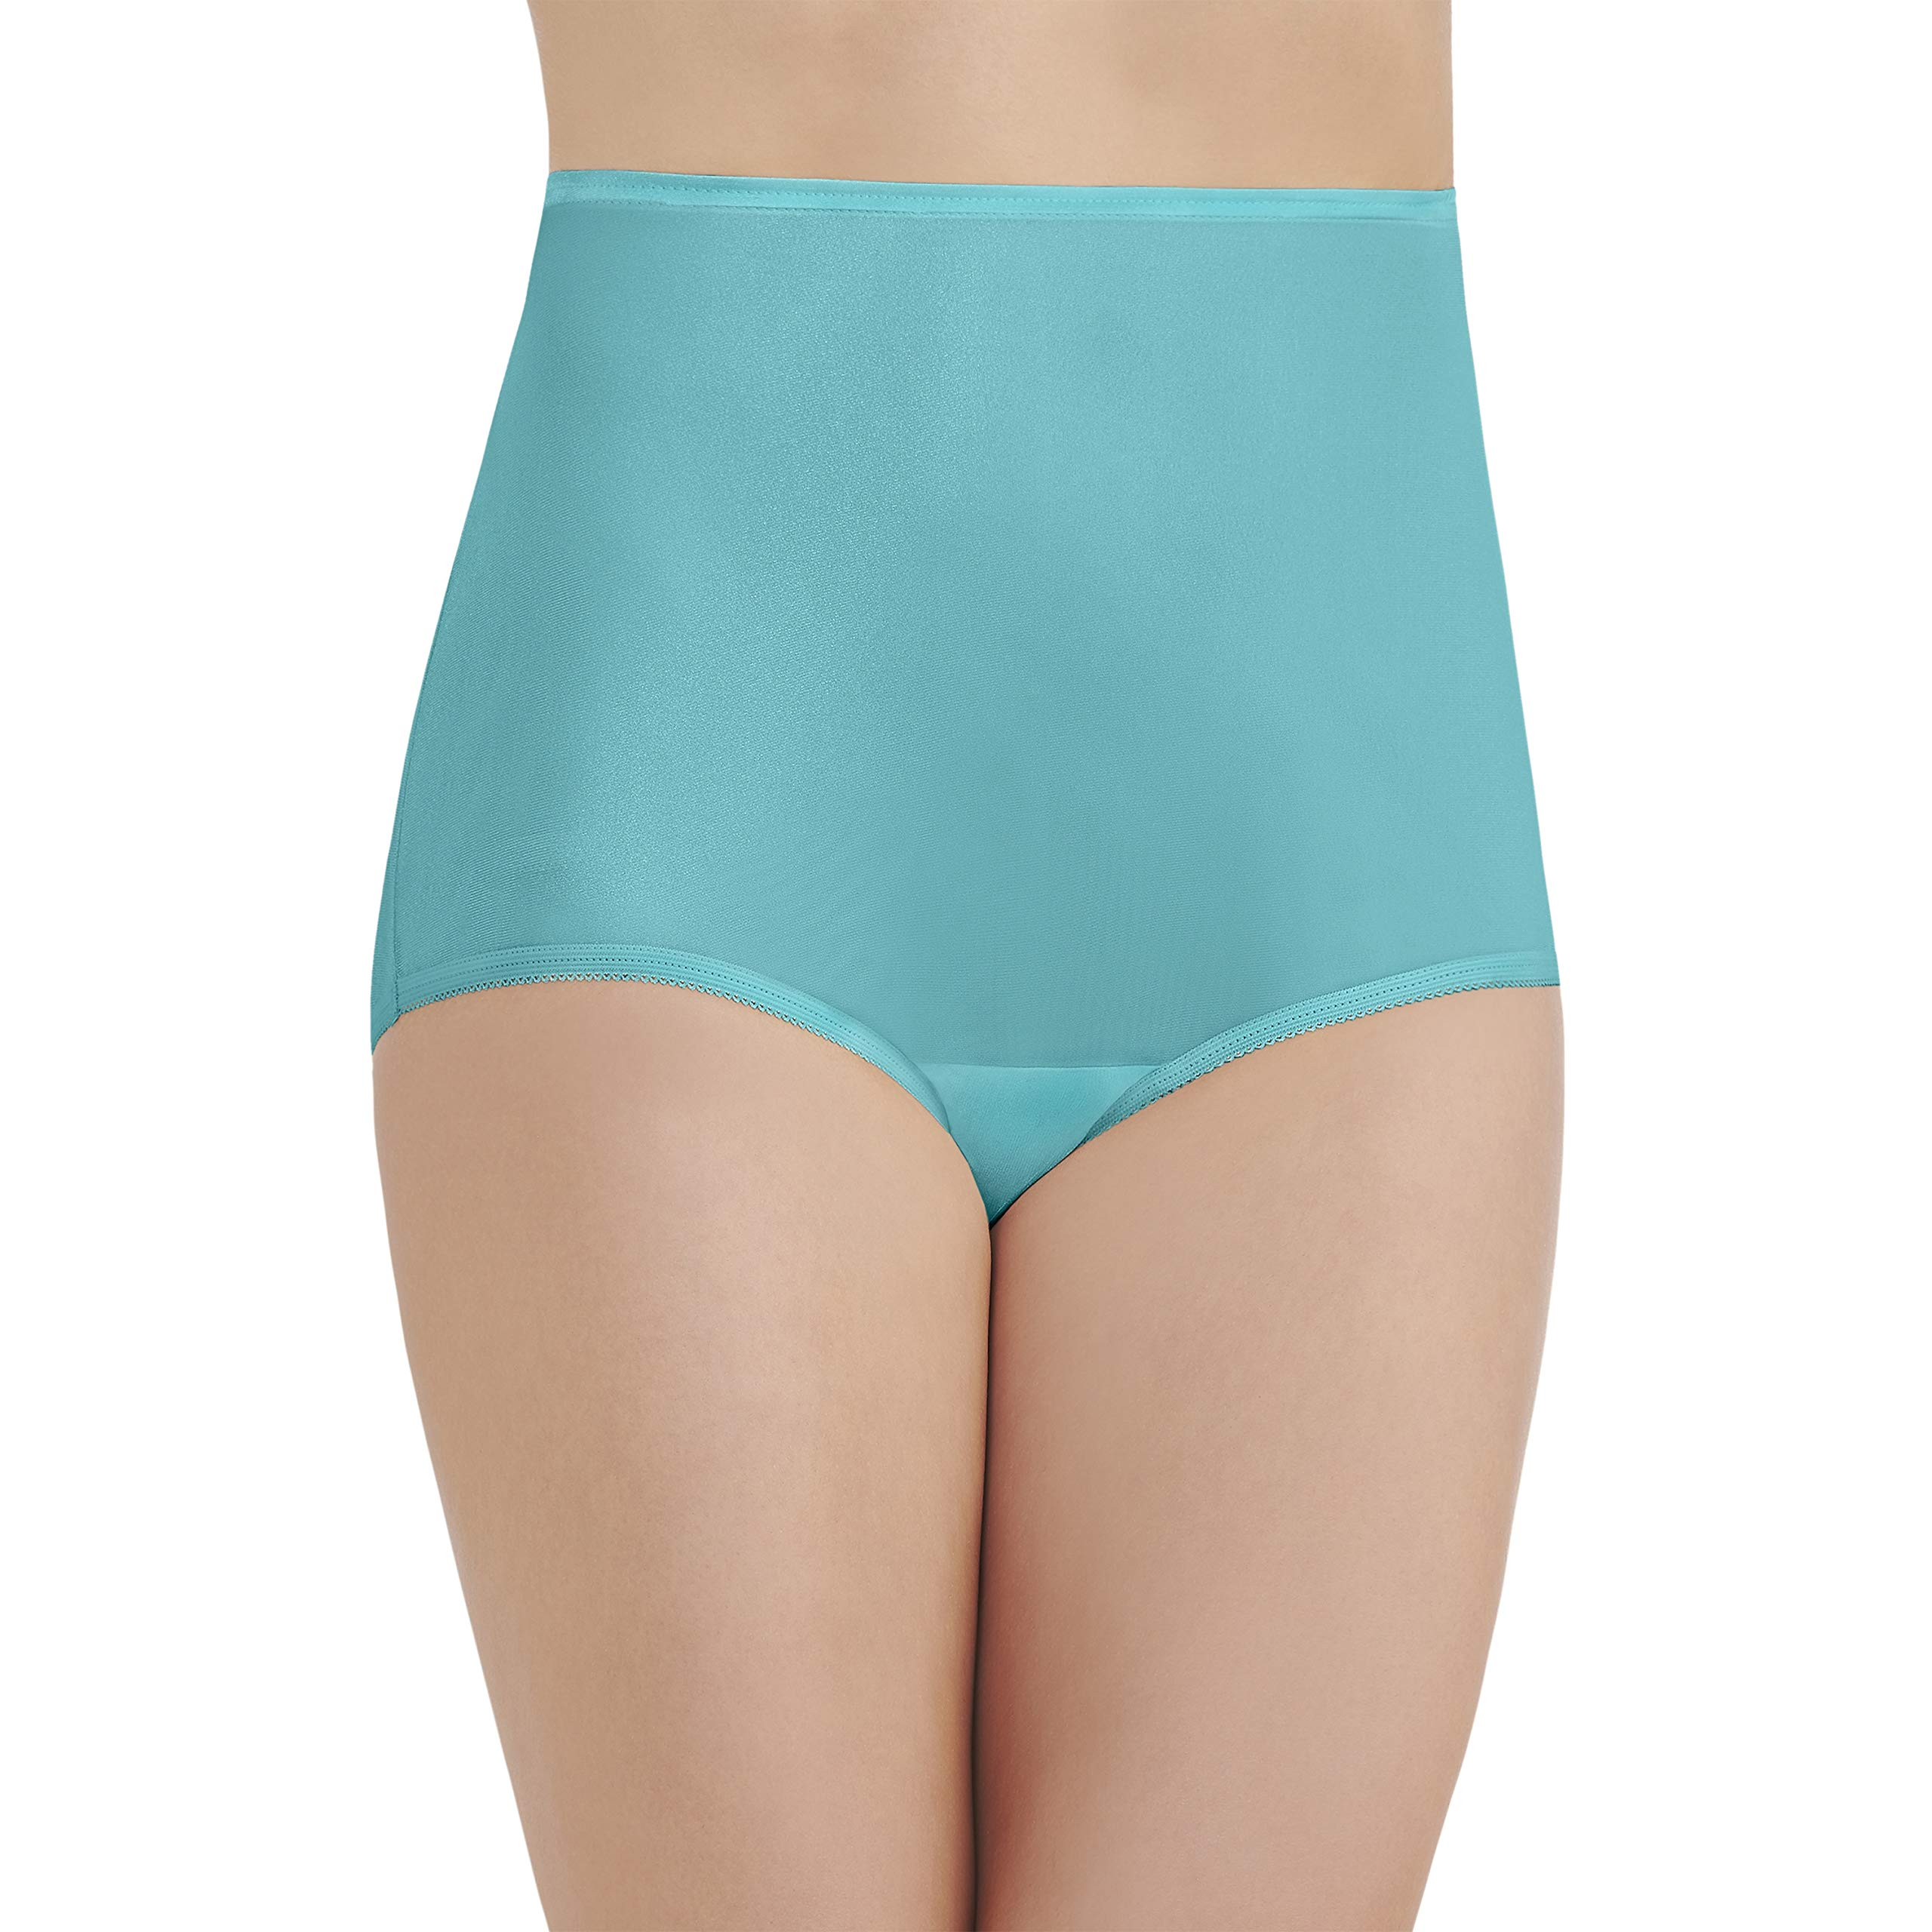 2b8f044b437cdd Galleon - Vanity Fair Women's Perfectly Yours Ravissant Tailored Brief  Panty 15712, Rainforest Aqua, 2X-Large/9